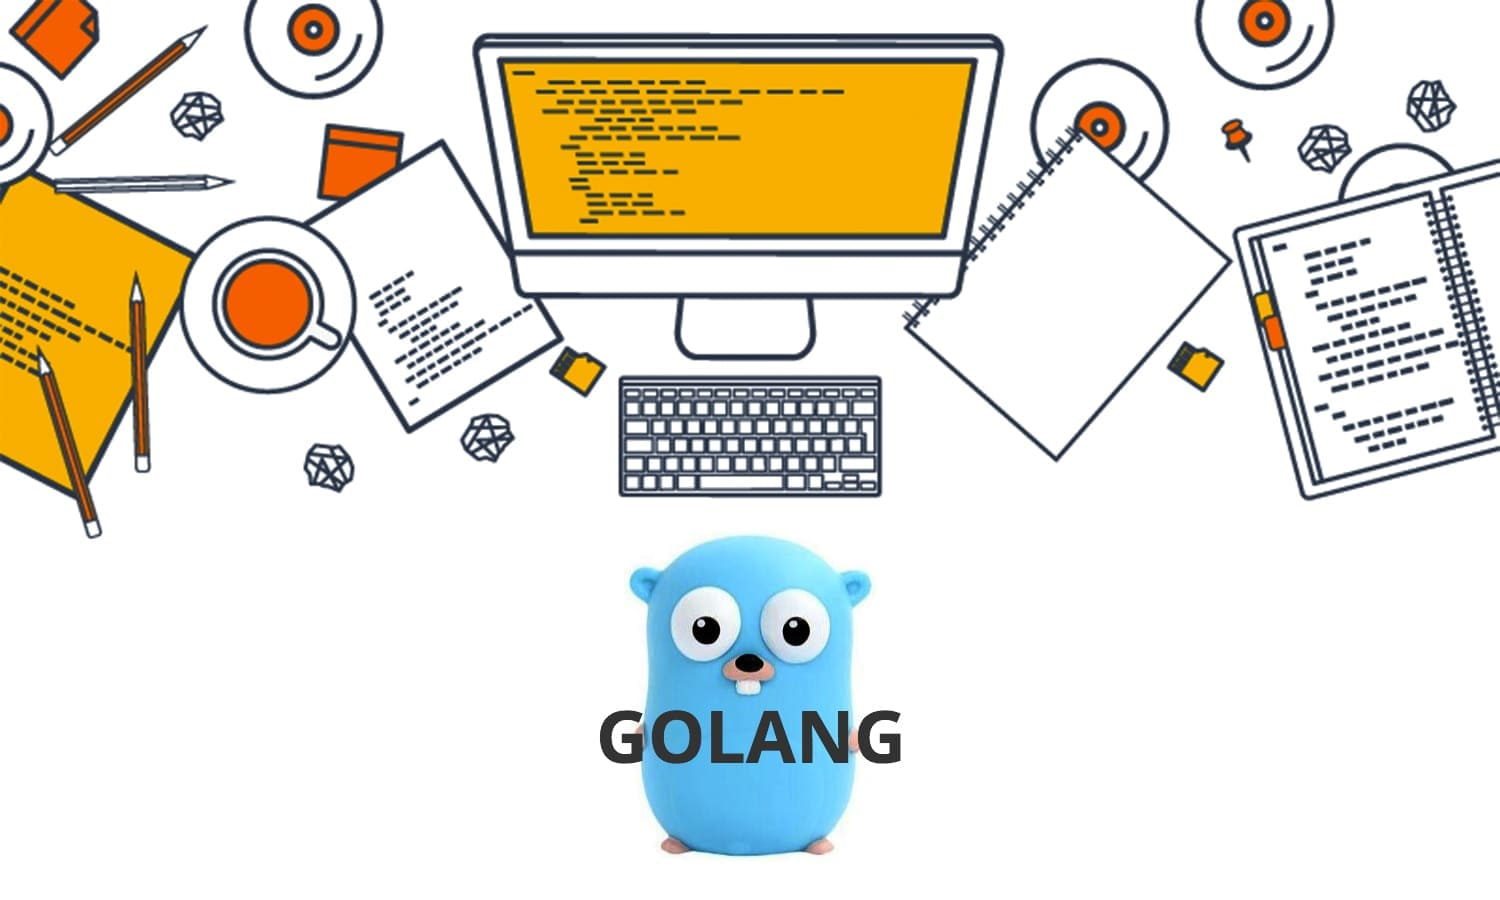 Golang project